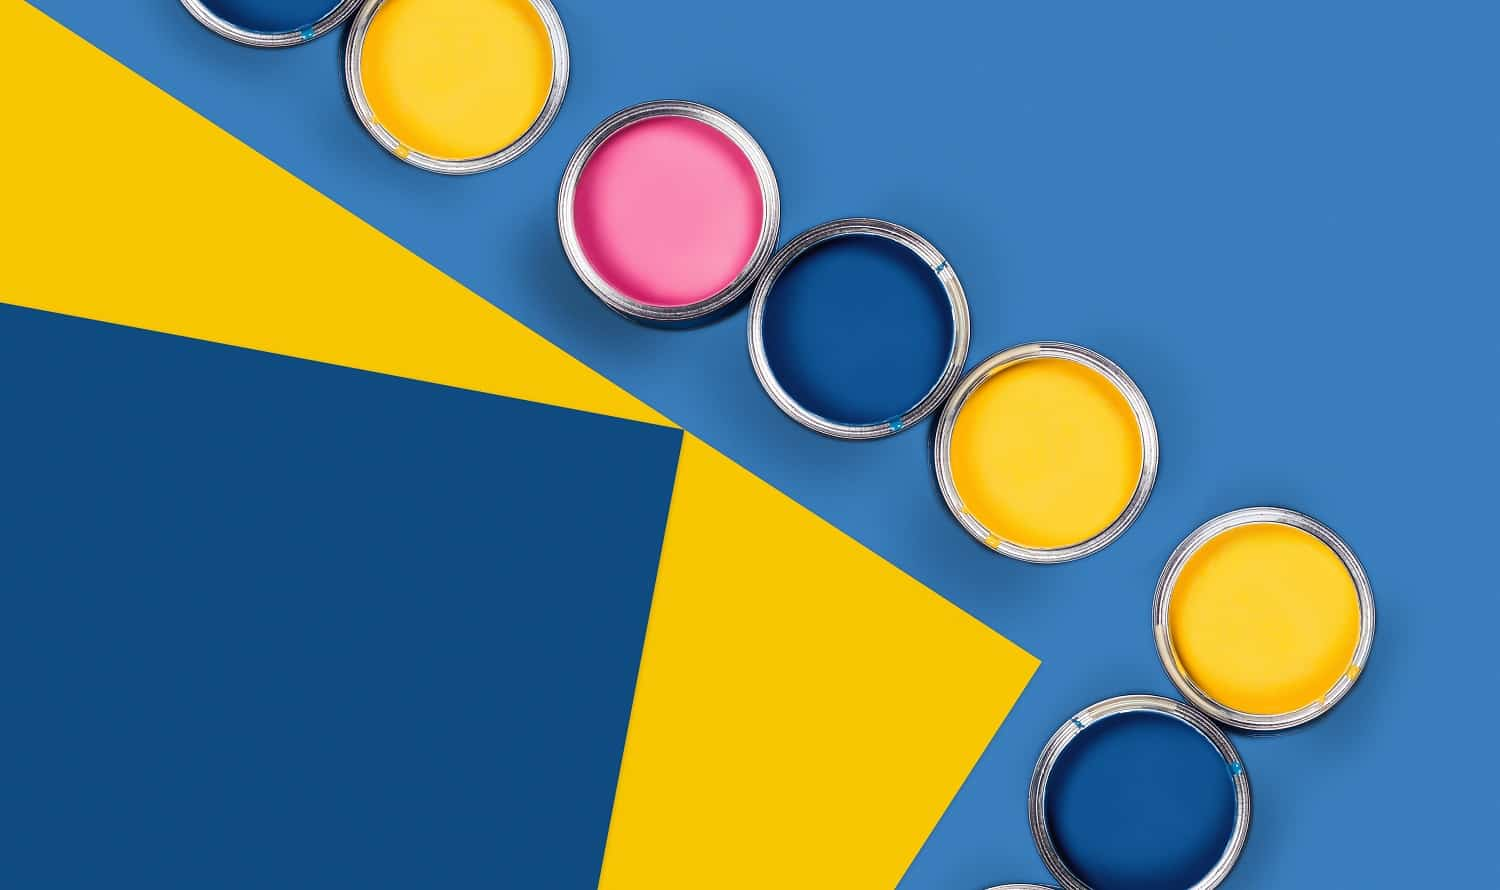 Renovation concept. Blue and yellow background with group of colored paint cans. Flat lay, top view, copy space.